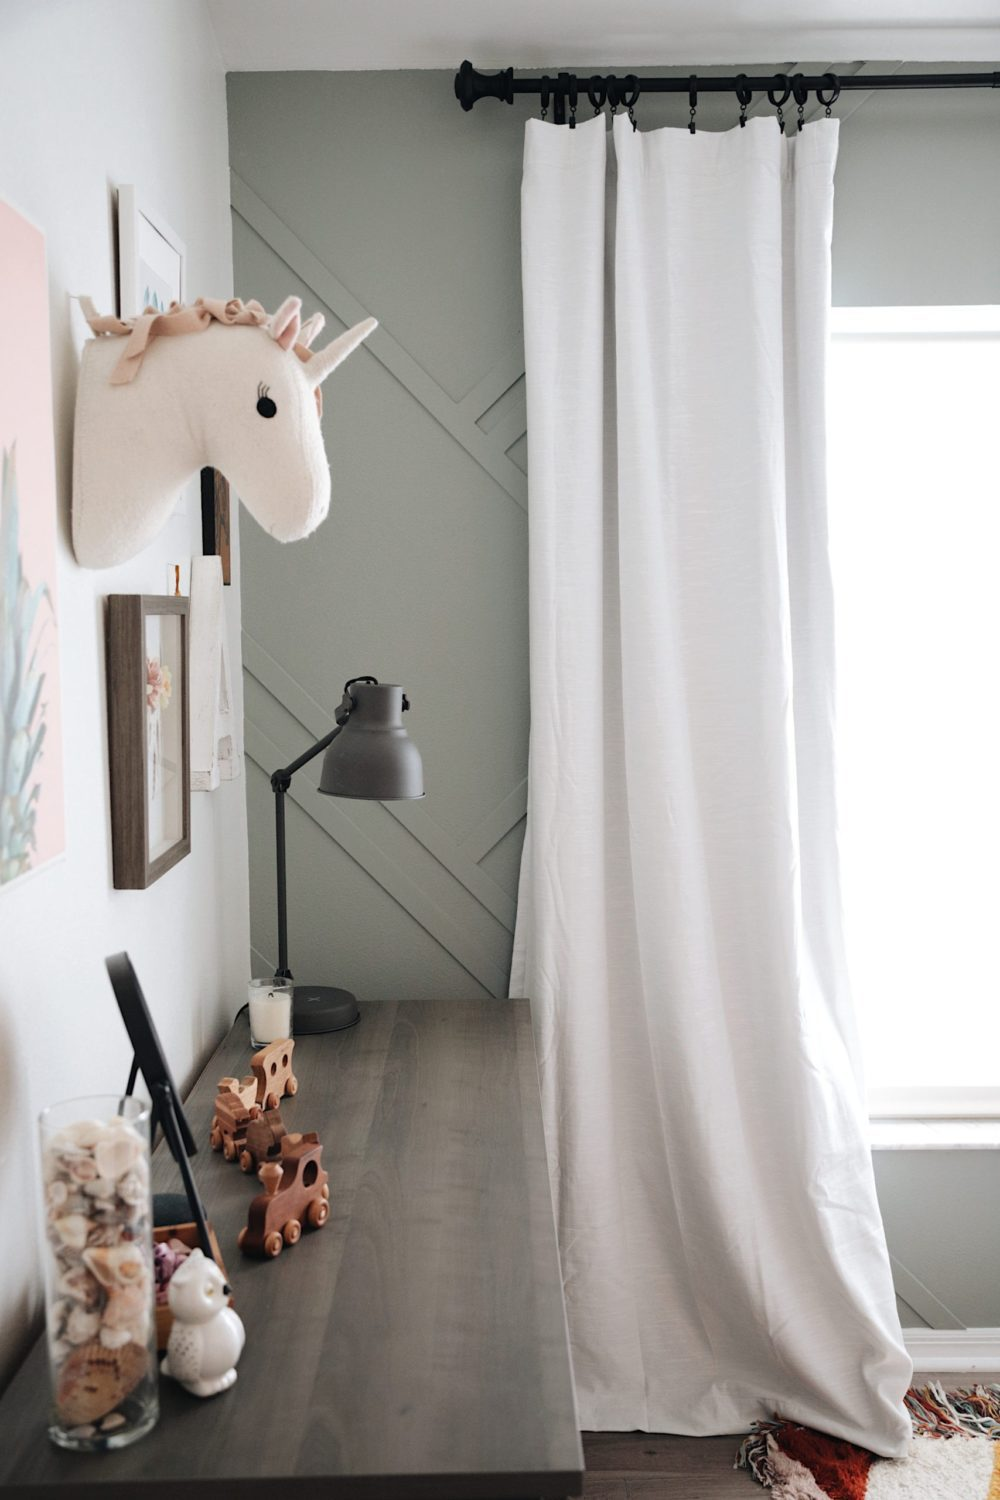 Shared girl's room design inspiration and how to DIY a gorgeous feature wall | Gorgeous Wood Feature Wall + Shared Girl's Room Update by popular Florida home decor blog, Fresh Mommy Blog: image of a shared girls' room decorated with a Lowe's South Shore Furniture Versa Gray Maple 6-Drawer Double Dresser, Lowe's LEVOLOR Trim+Go Shadow Light Filtering Cordless Solar Shade, Lowe's allen + roth 2-Pack Black Curtain Rod Finials, Lowe's Paint Paints & Primers Paint Samples Item # 1185292 Model # 5005-2A Valspar Secret Moss Interior Paint, Lowe's DAP DryDex 8-oz White Spackling, Lowe's allen + roth Matte Black 72-in To 144-in Matte Black Steel Single Curtain Rod, and Lowe's allen + roth LL WARWICK 42-IN x 84-IN TAUP PNL 84-in Taupe Polyester Blackout Thermal Lined Single Curtain Panel.